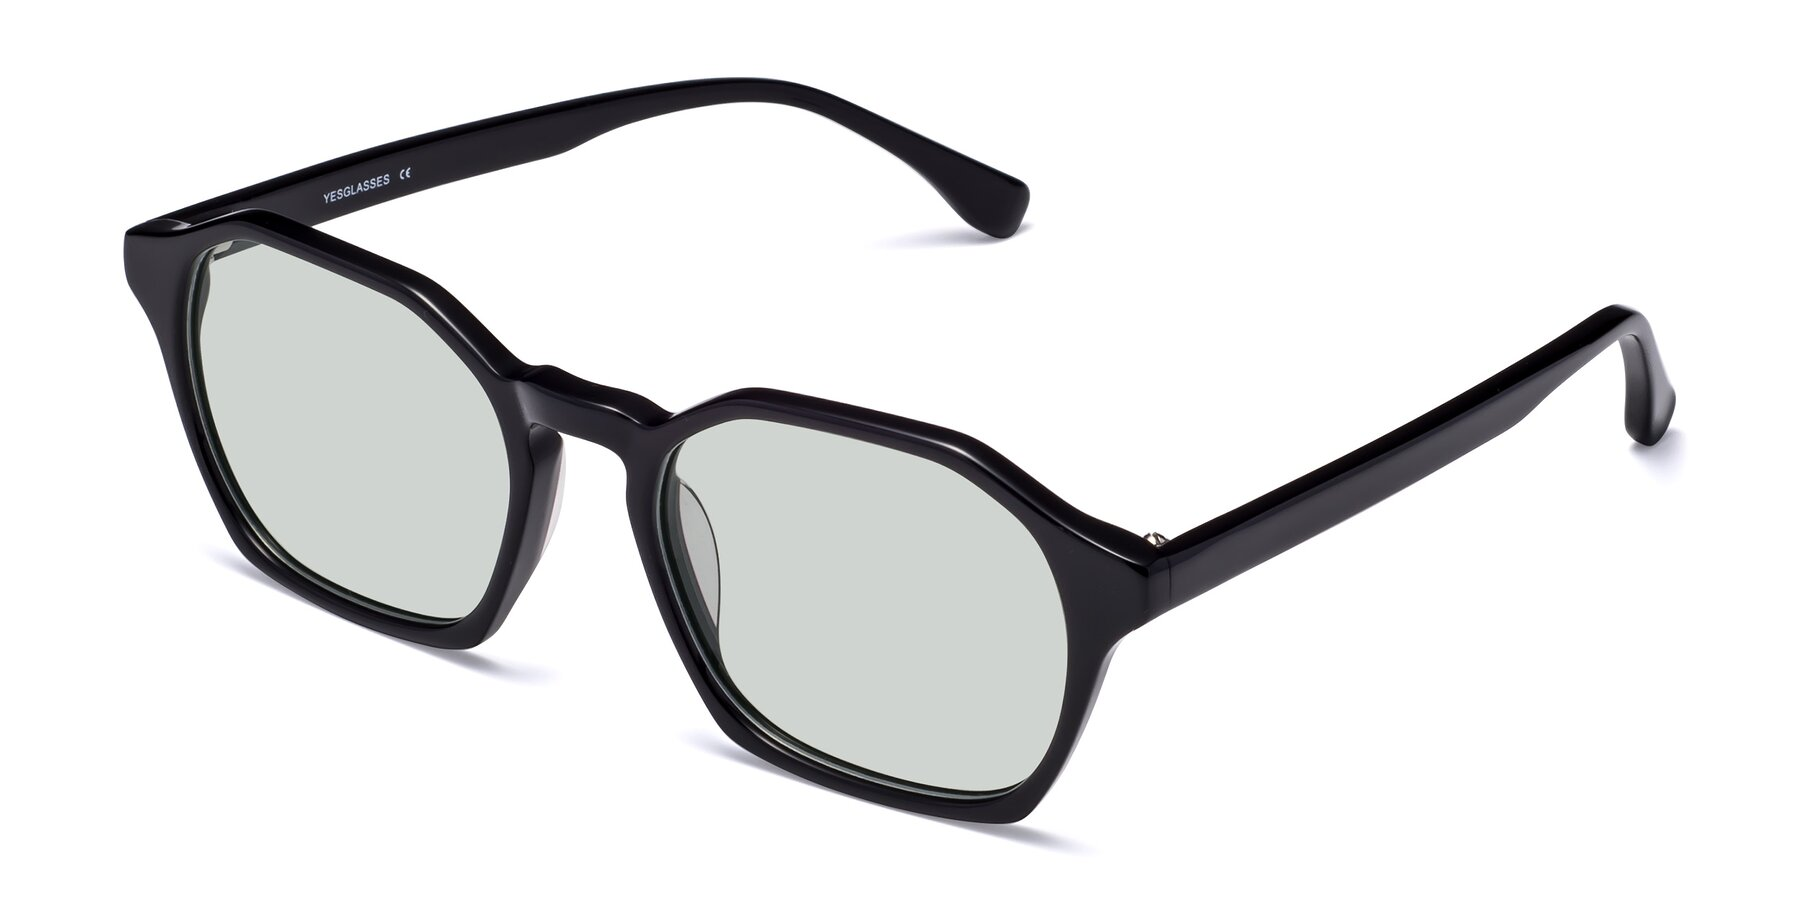 Angle of Stoltz in Black with Light Green Tinted Lenses